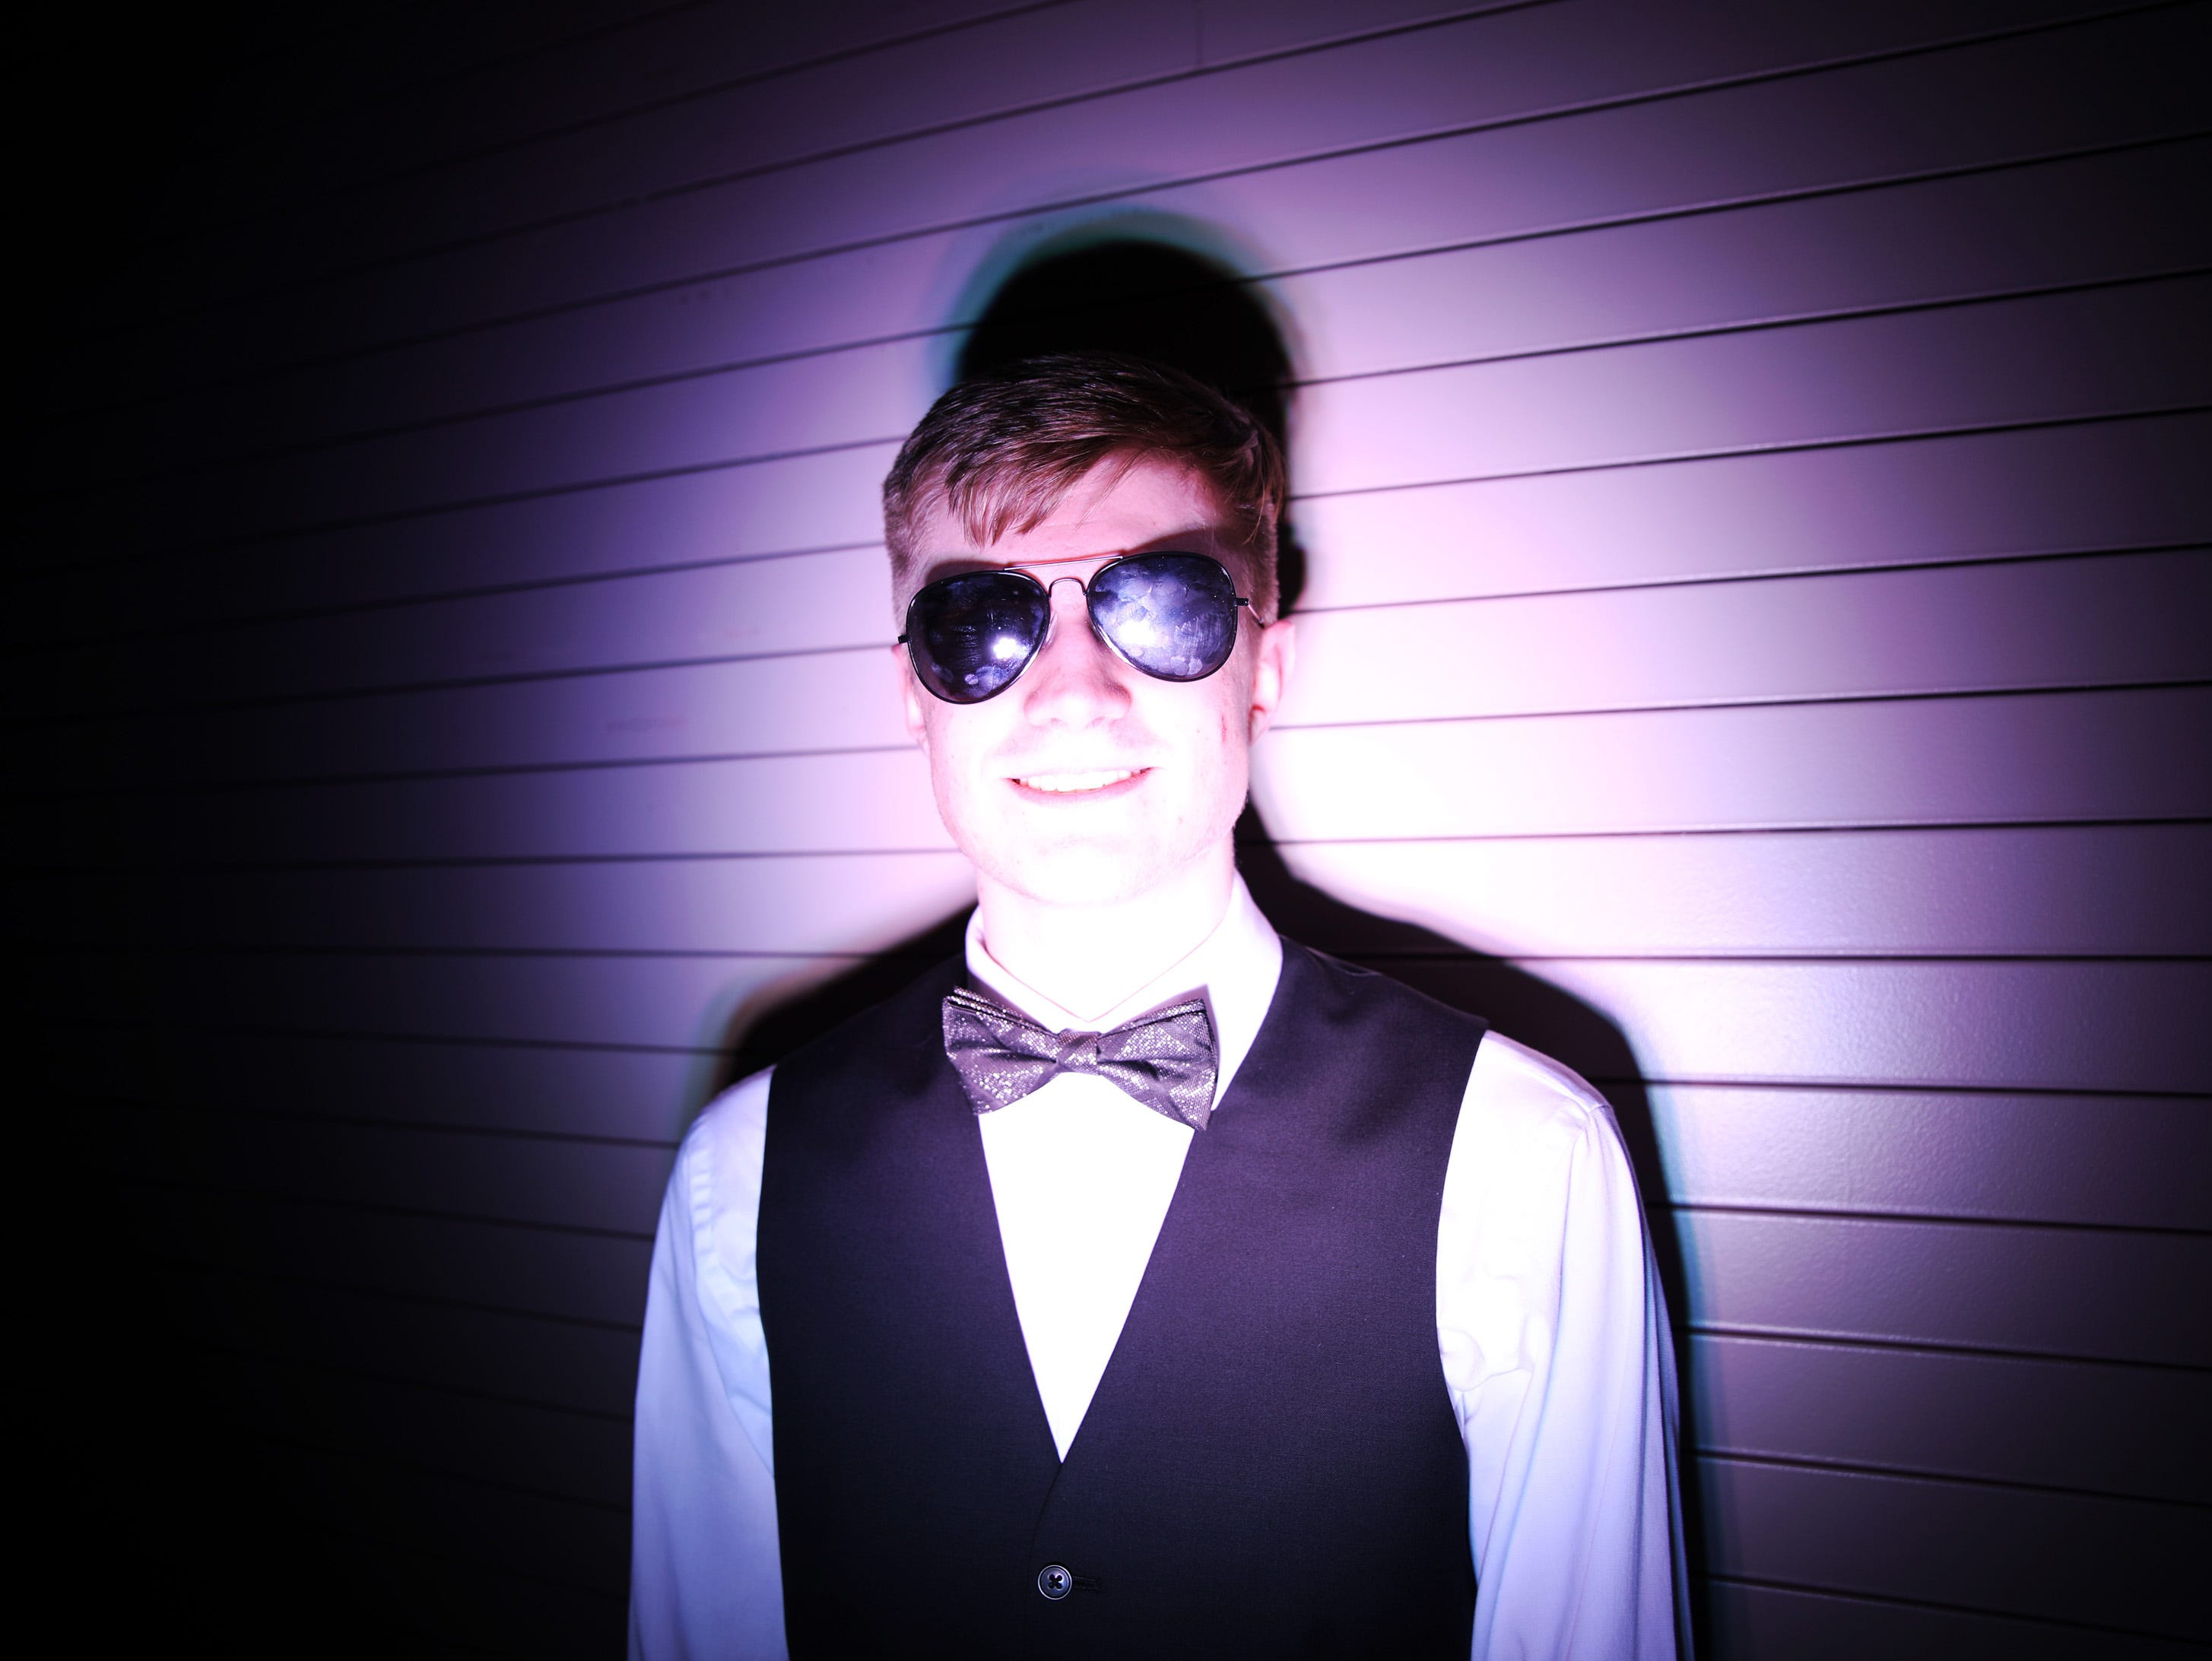 The spotlight is on junior Joshua Carlberg at the circus-themed Urbandale High School Junior/Senior Prom Spectacular at the State Historical Building in Des Moines on Saturday, April 11, 2019.  The post-prom event is held at school right after the dance from 11 p.m. to 4:30 a.m. with food, prizes, a hypnotist, inflatables, and casino games.